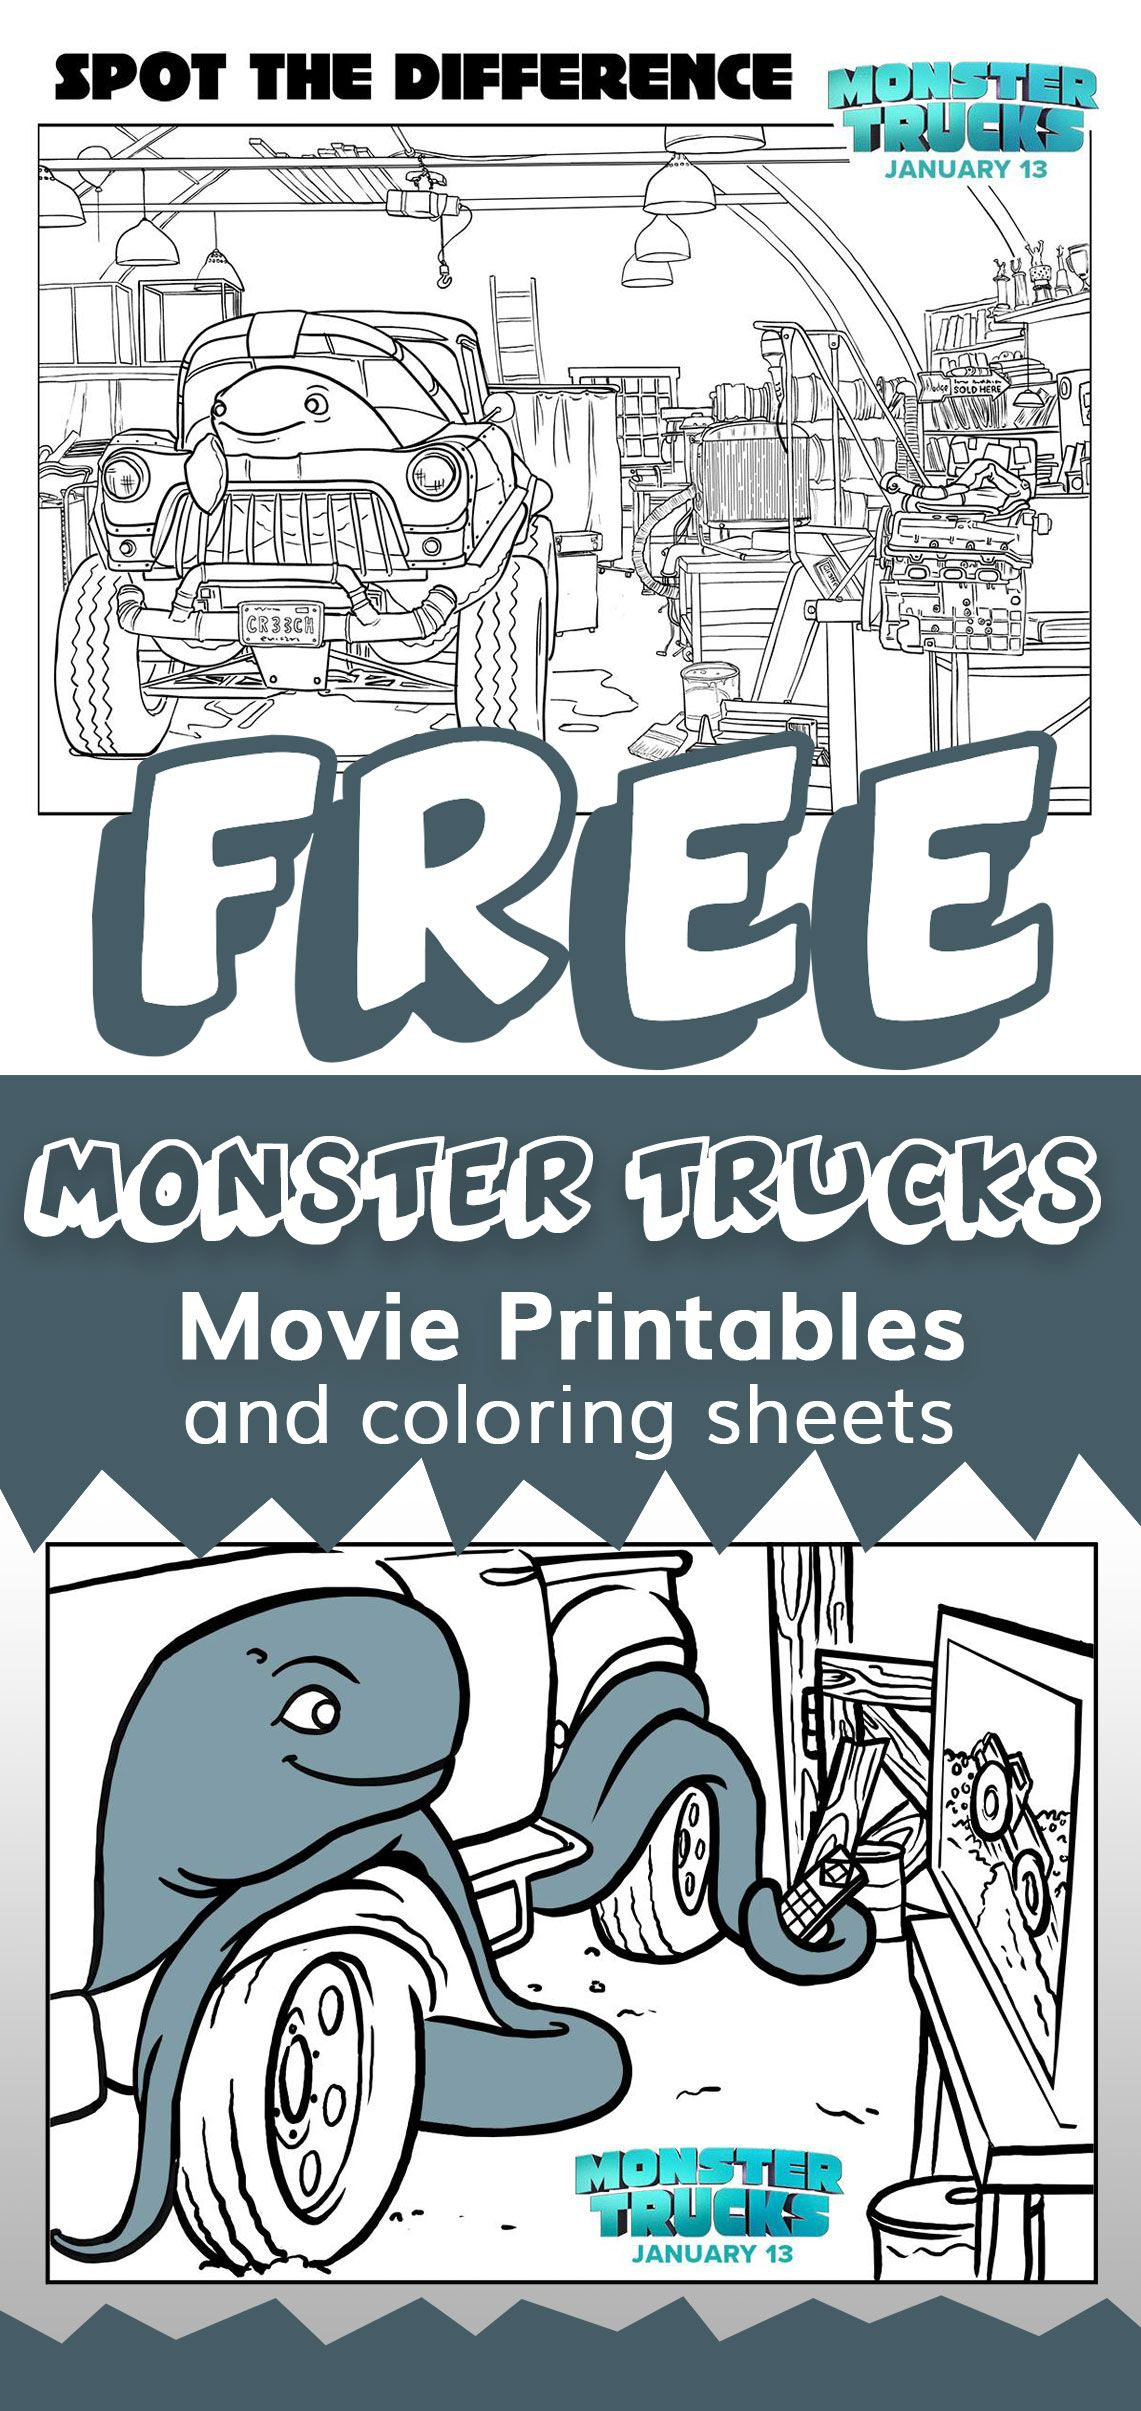 Monster Trucks movie printable, coloring, and activity sheets | Free ...